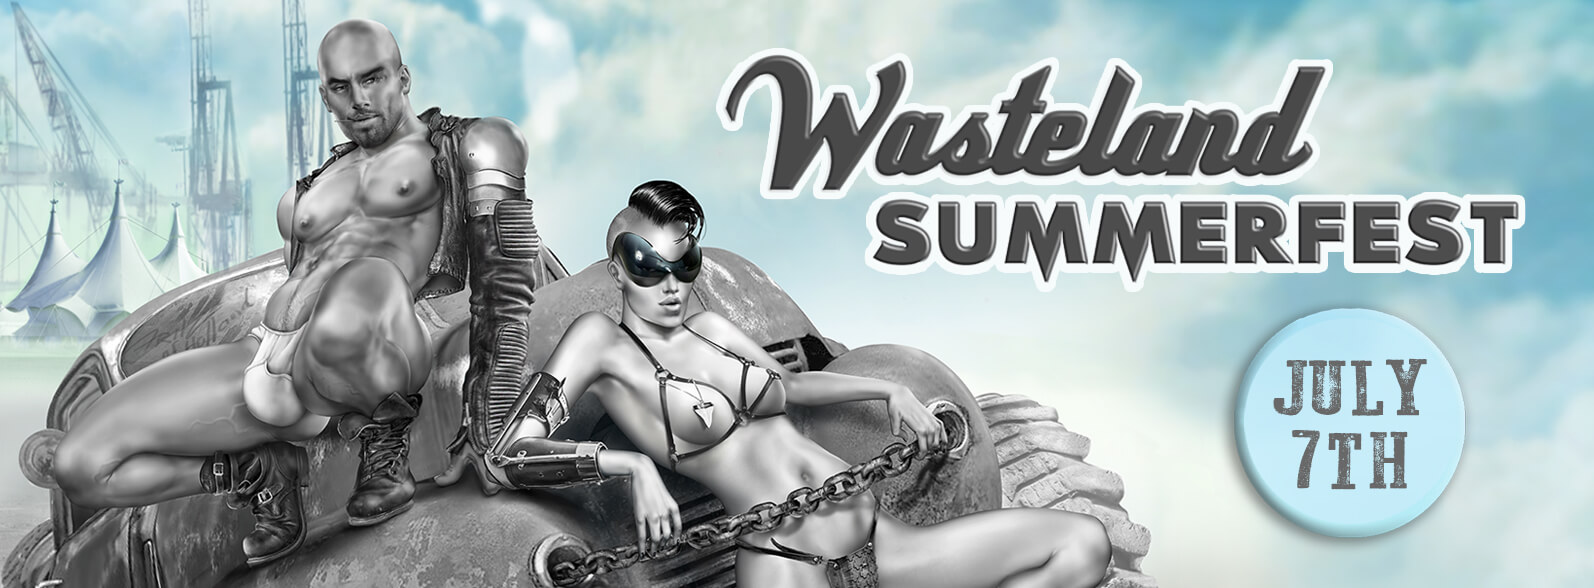 Mistress Amrita Gladiator show with Giada Da Vinci (Rome)  at Wasteland Amsterdam Summerfest in Amsterdam, Netherlands on 07 July 2018